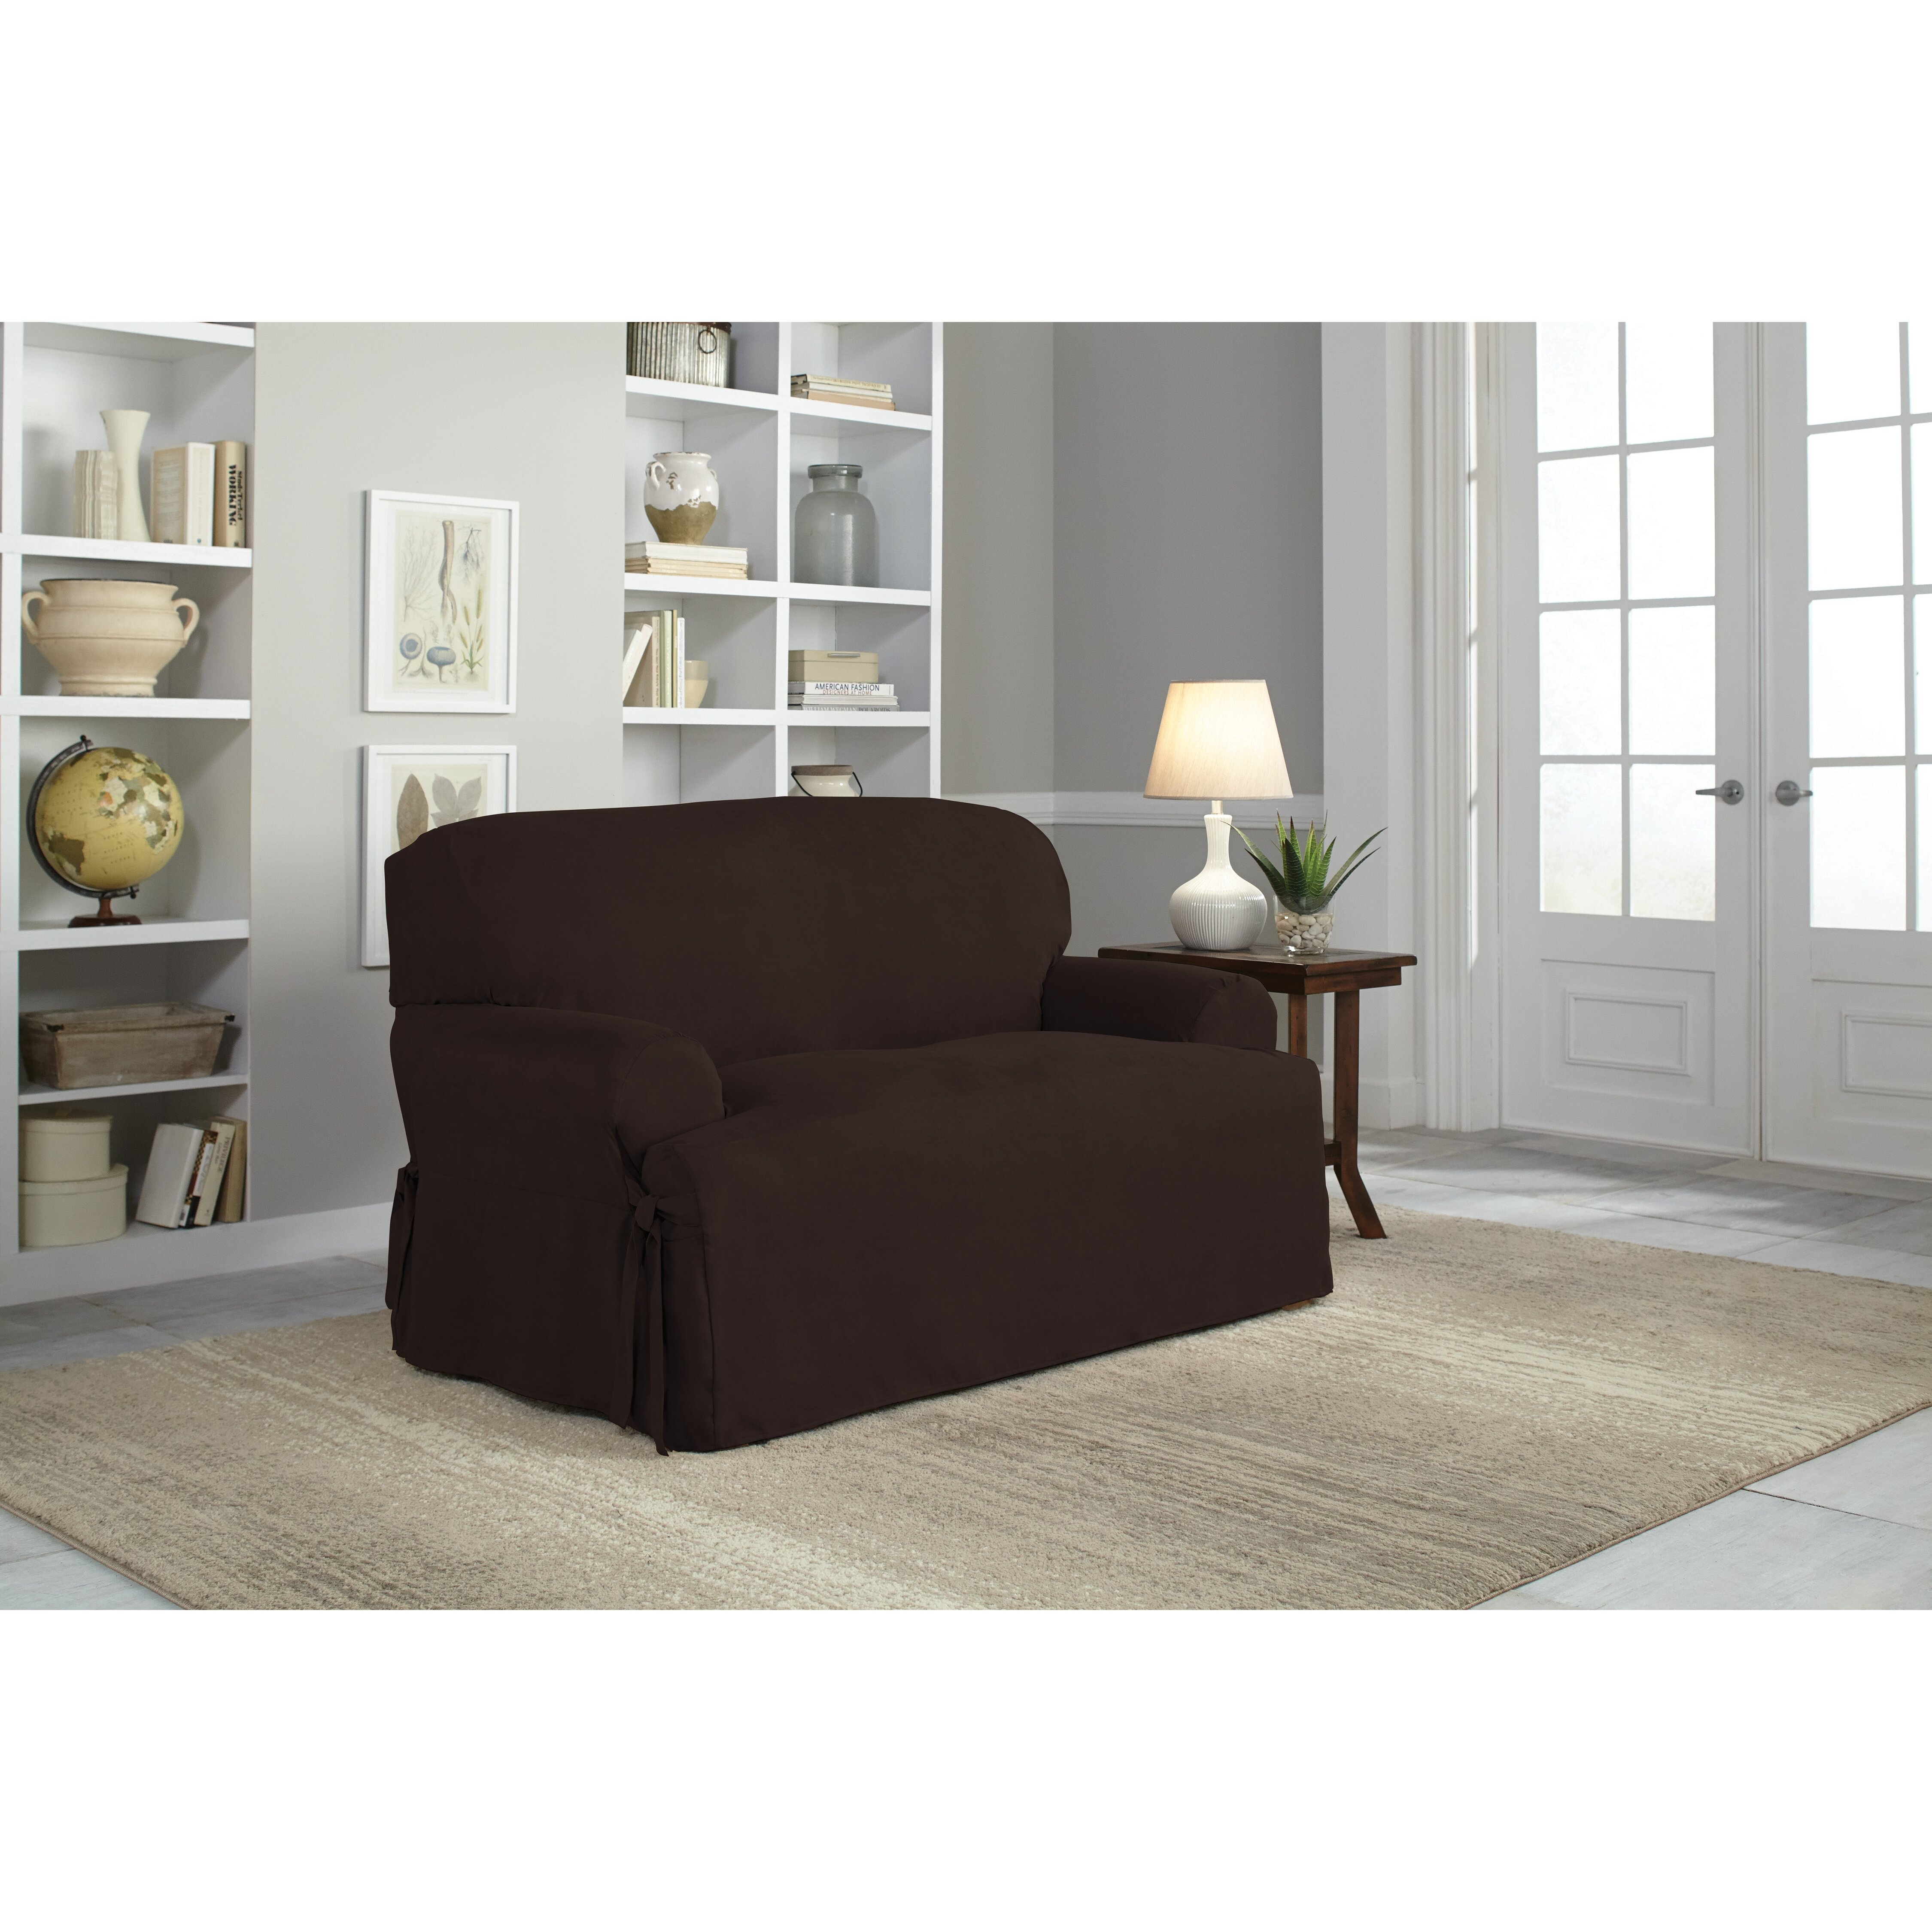 Serta Loveseat T Cushion Slipcover Reviews Wayfair